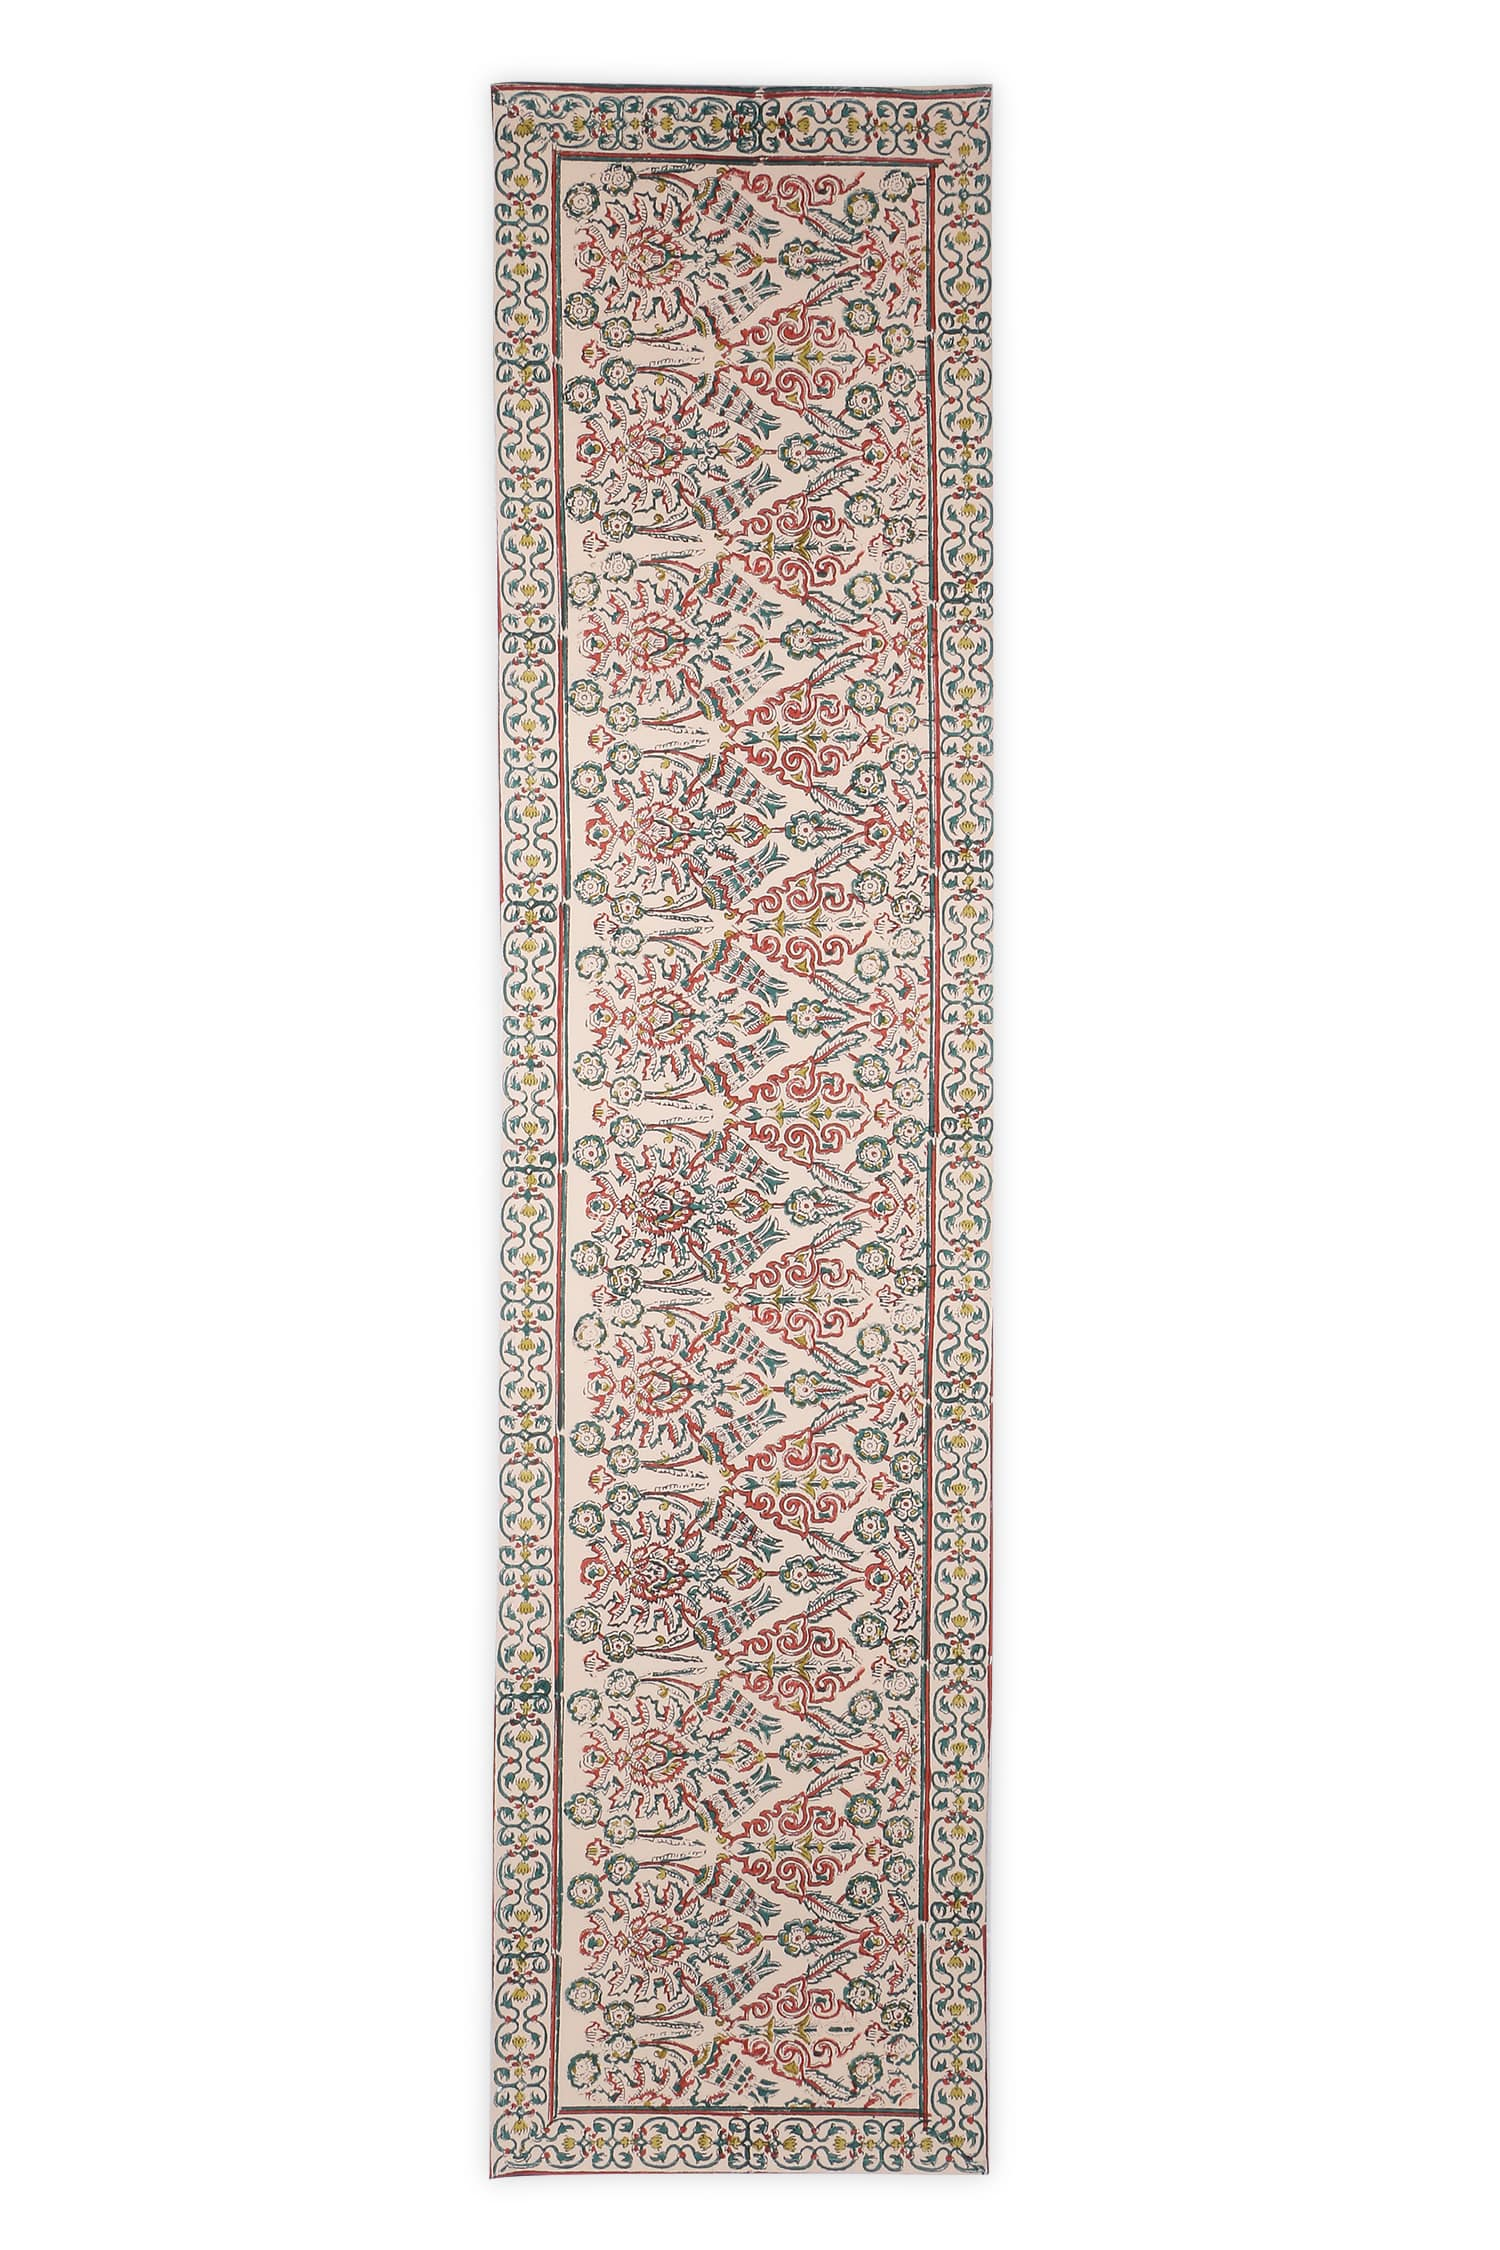 Jaipuri Cotton Table Runner - 1